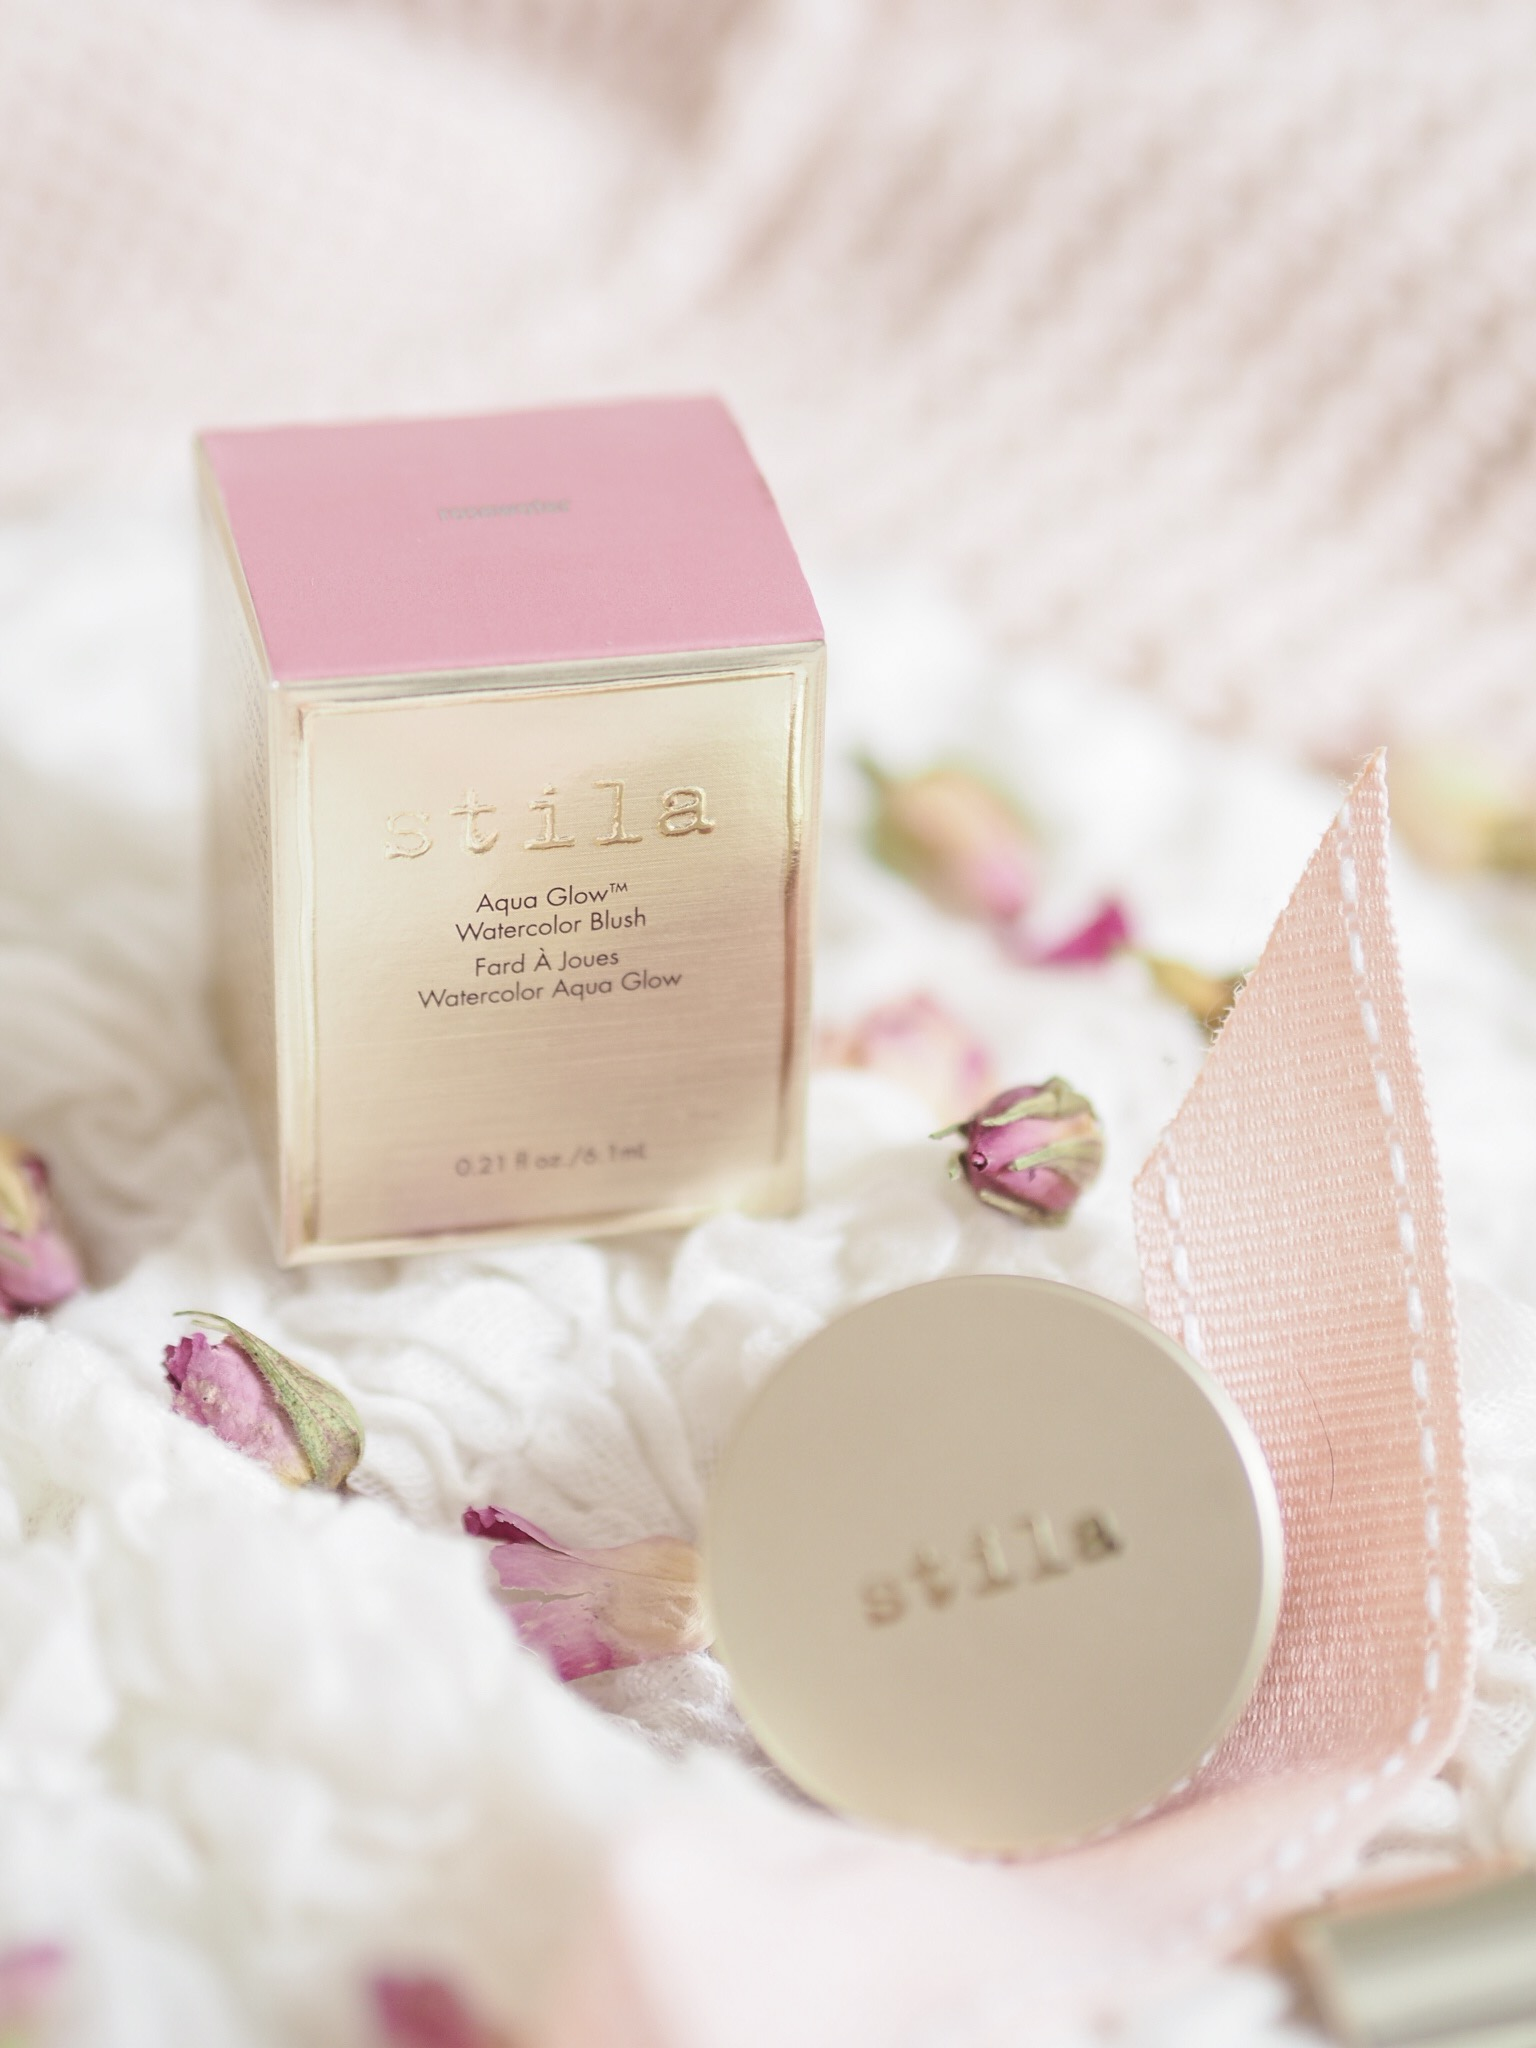 stila watercolour blush